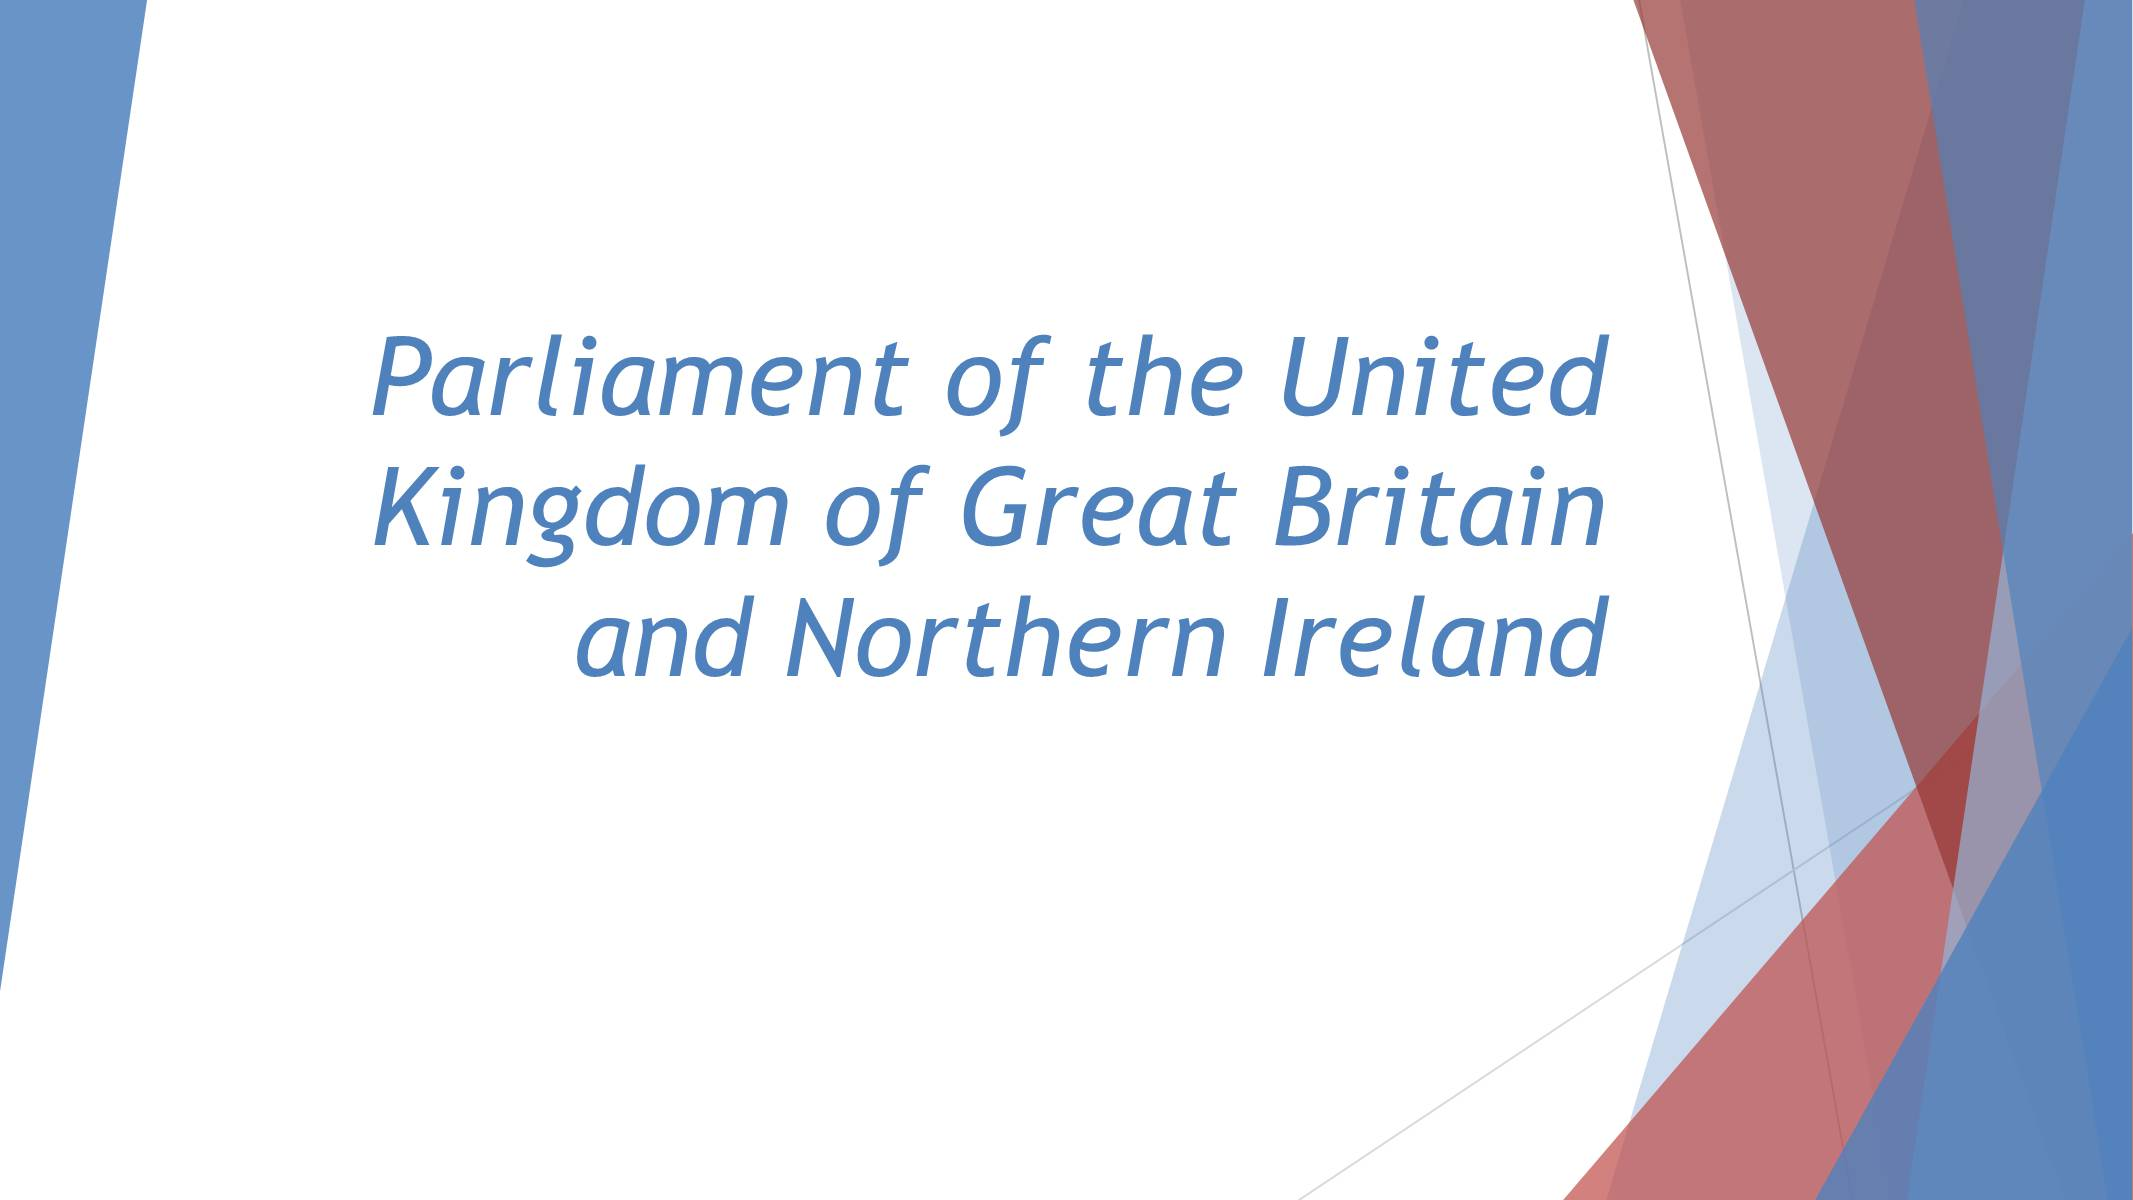 Презентація на тему «Parliament of the United Kingdom of Great Britain and Northern Ireland» - Слайд #1